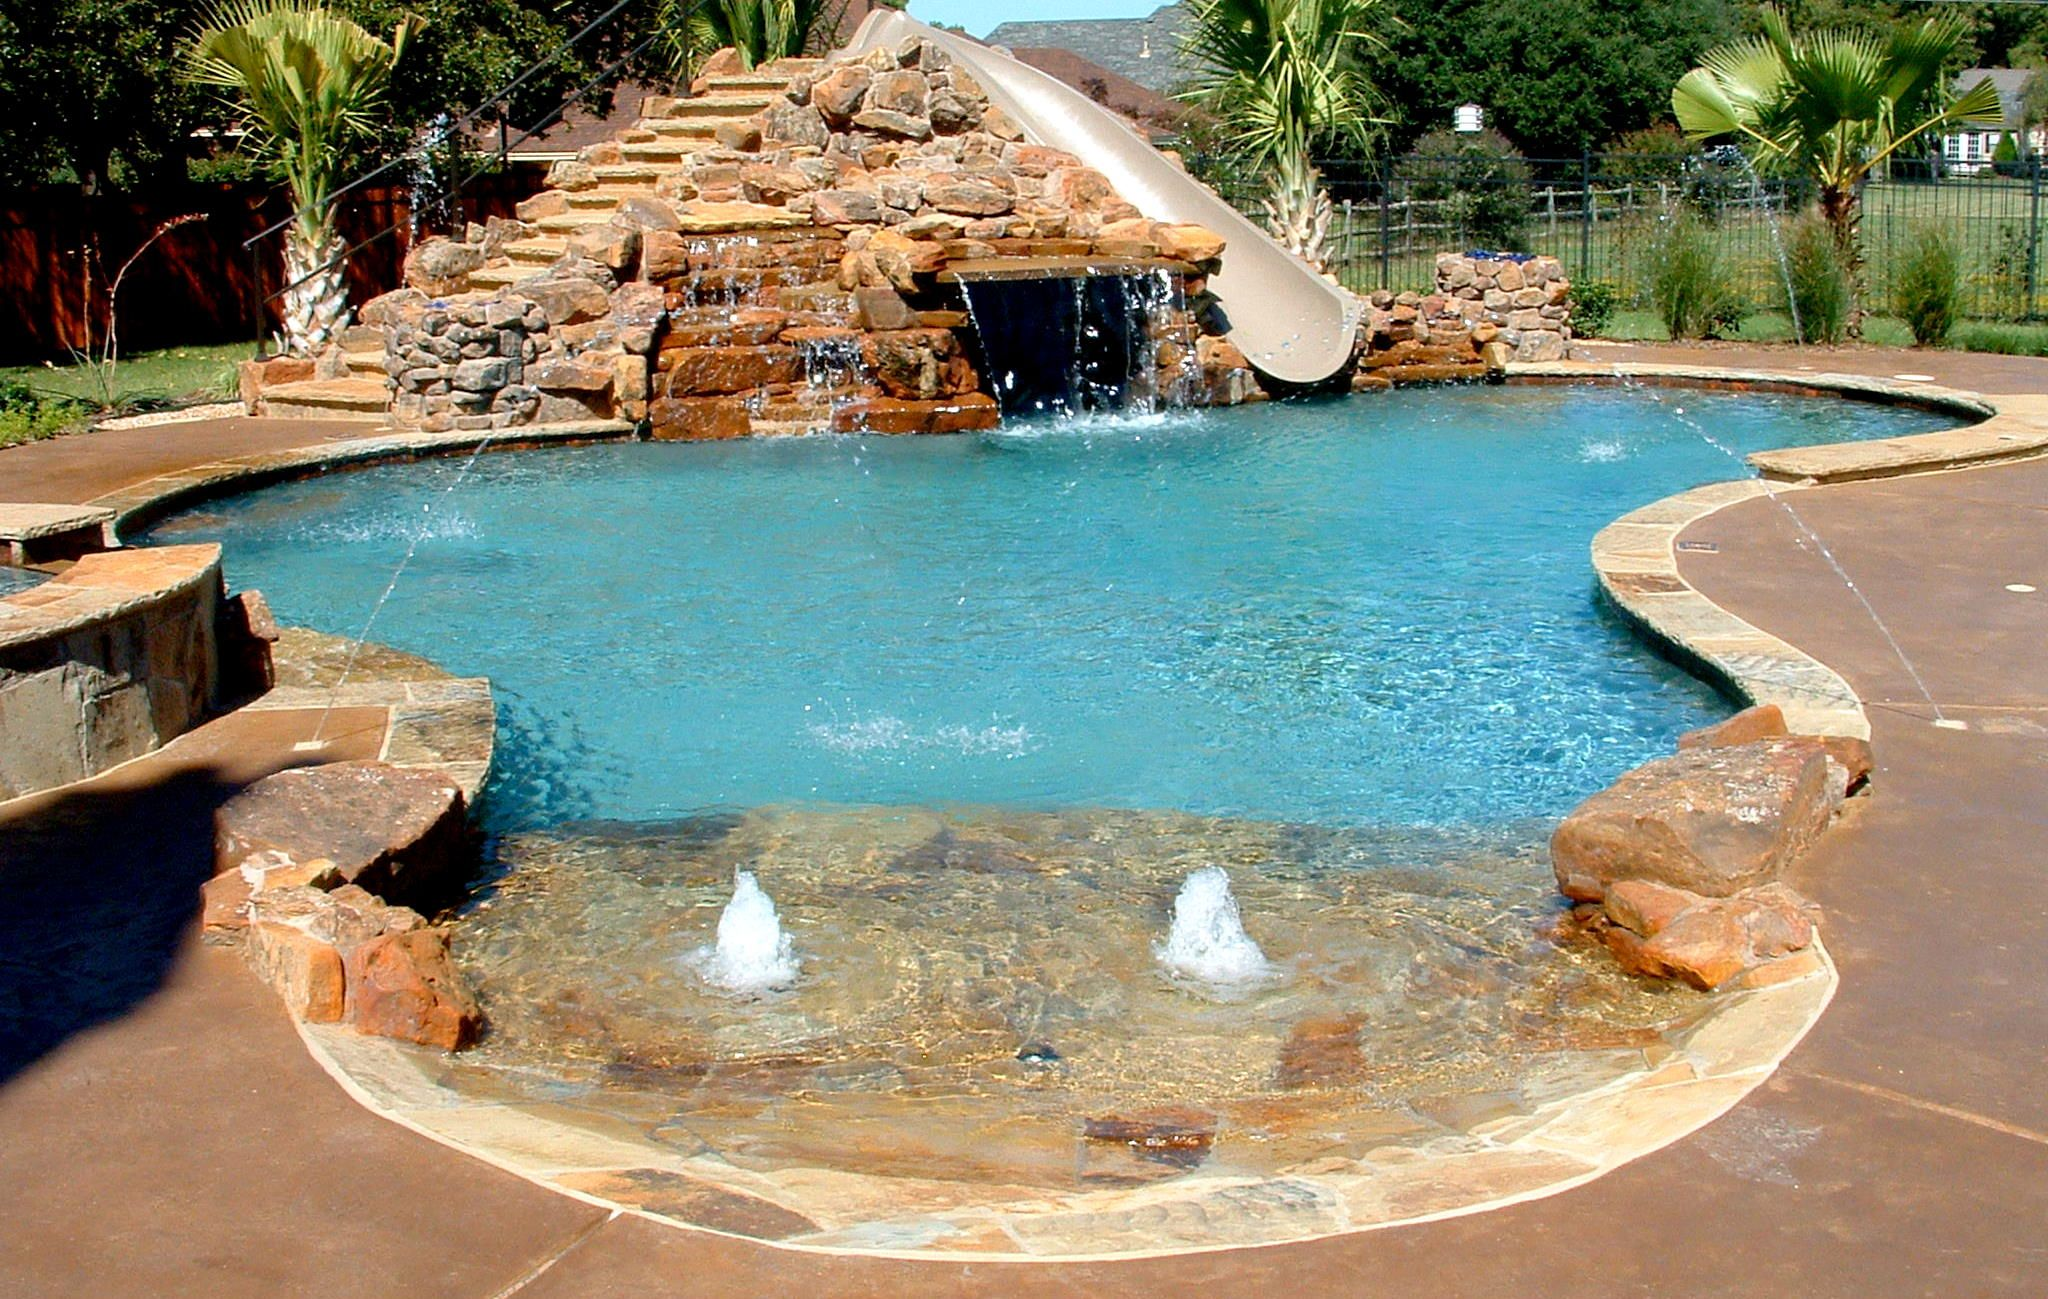 Inground Pools With Rock Slides Natural Swimming Pool With Water Slide Waterfall Southlake